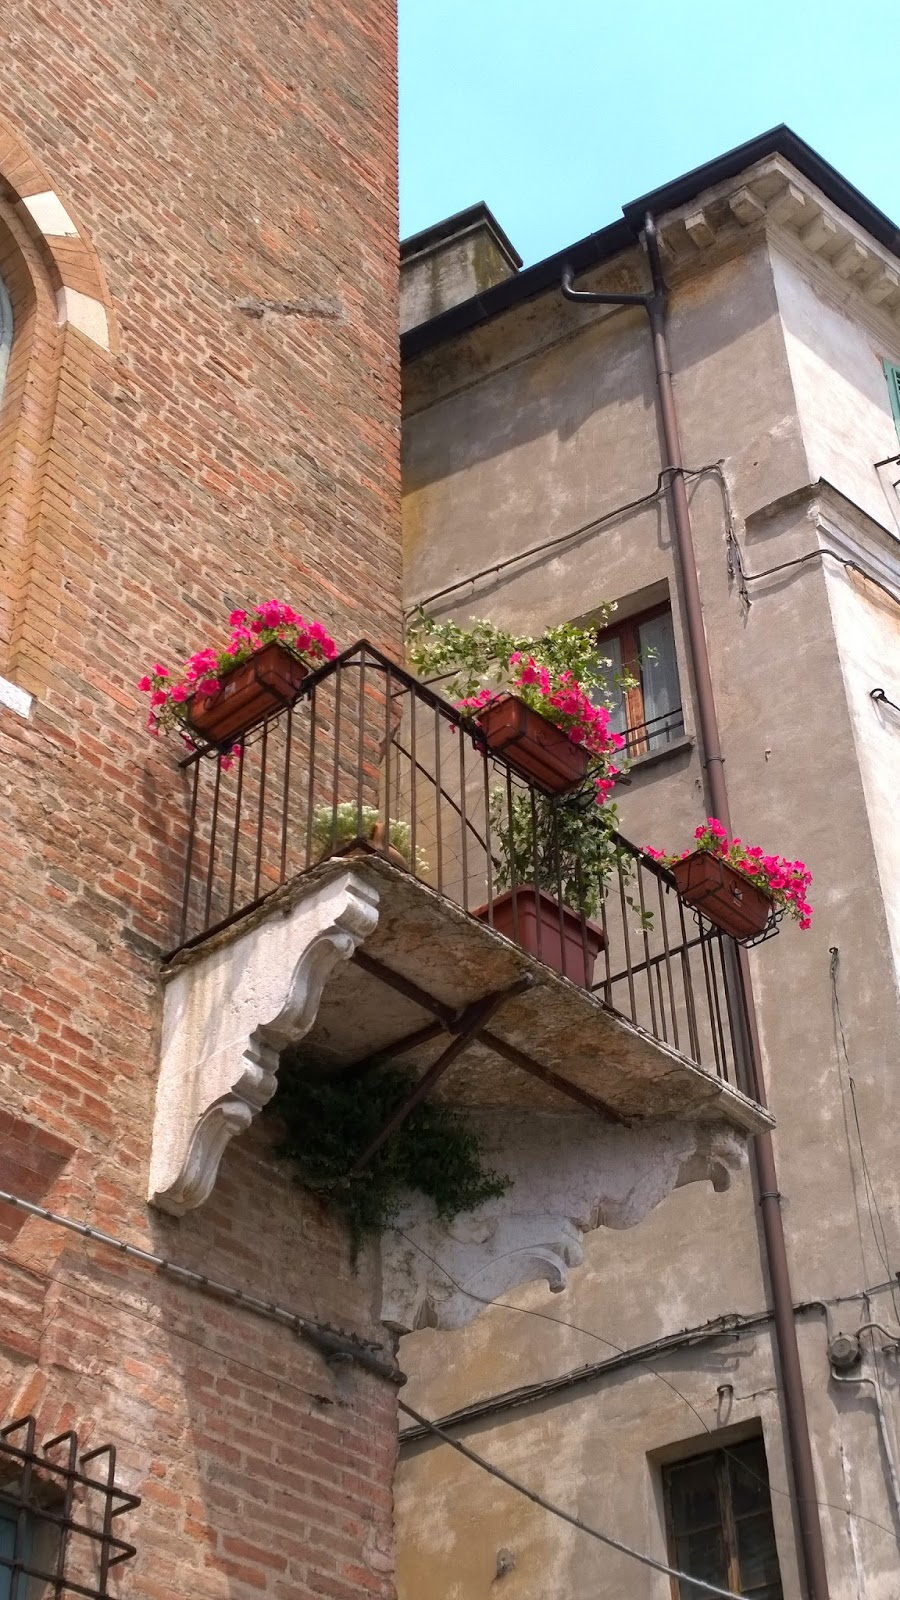 A pretty balcony at Piazza Sordello